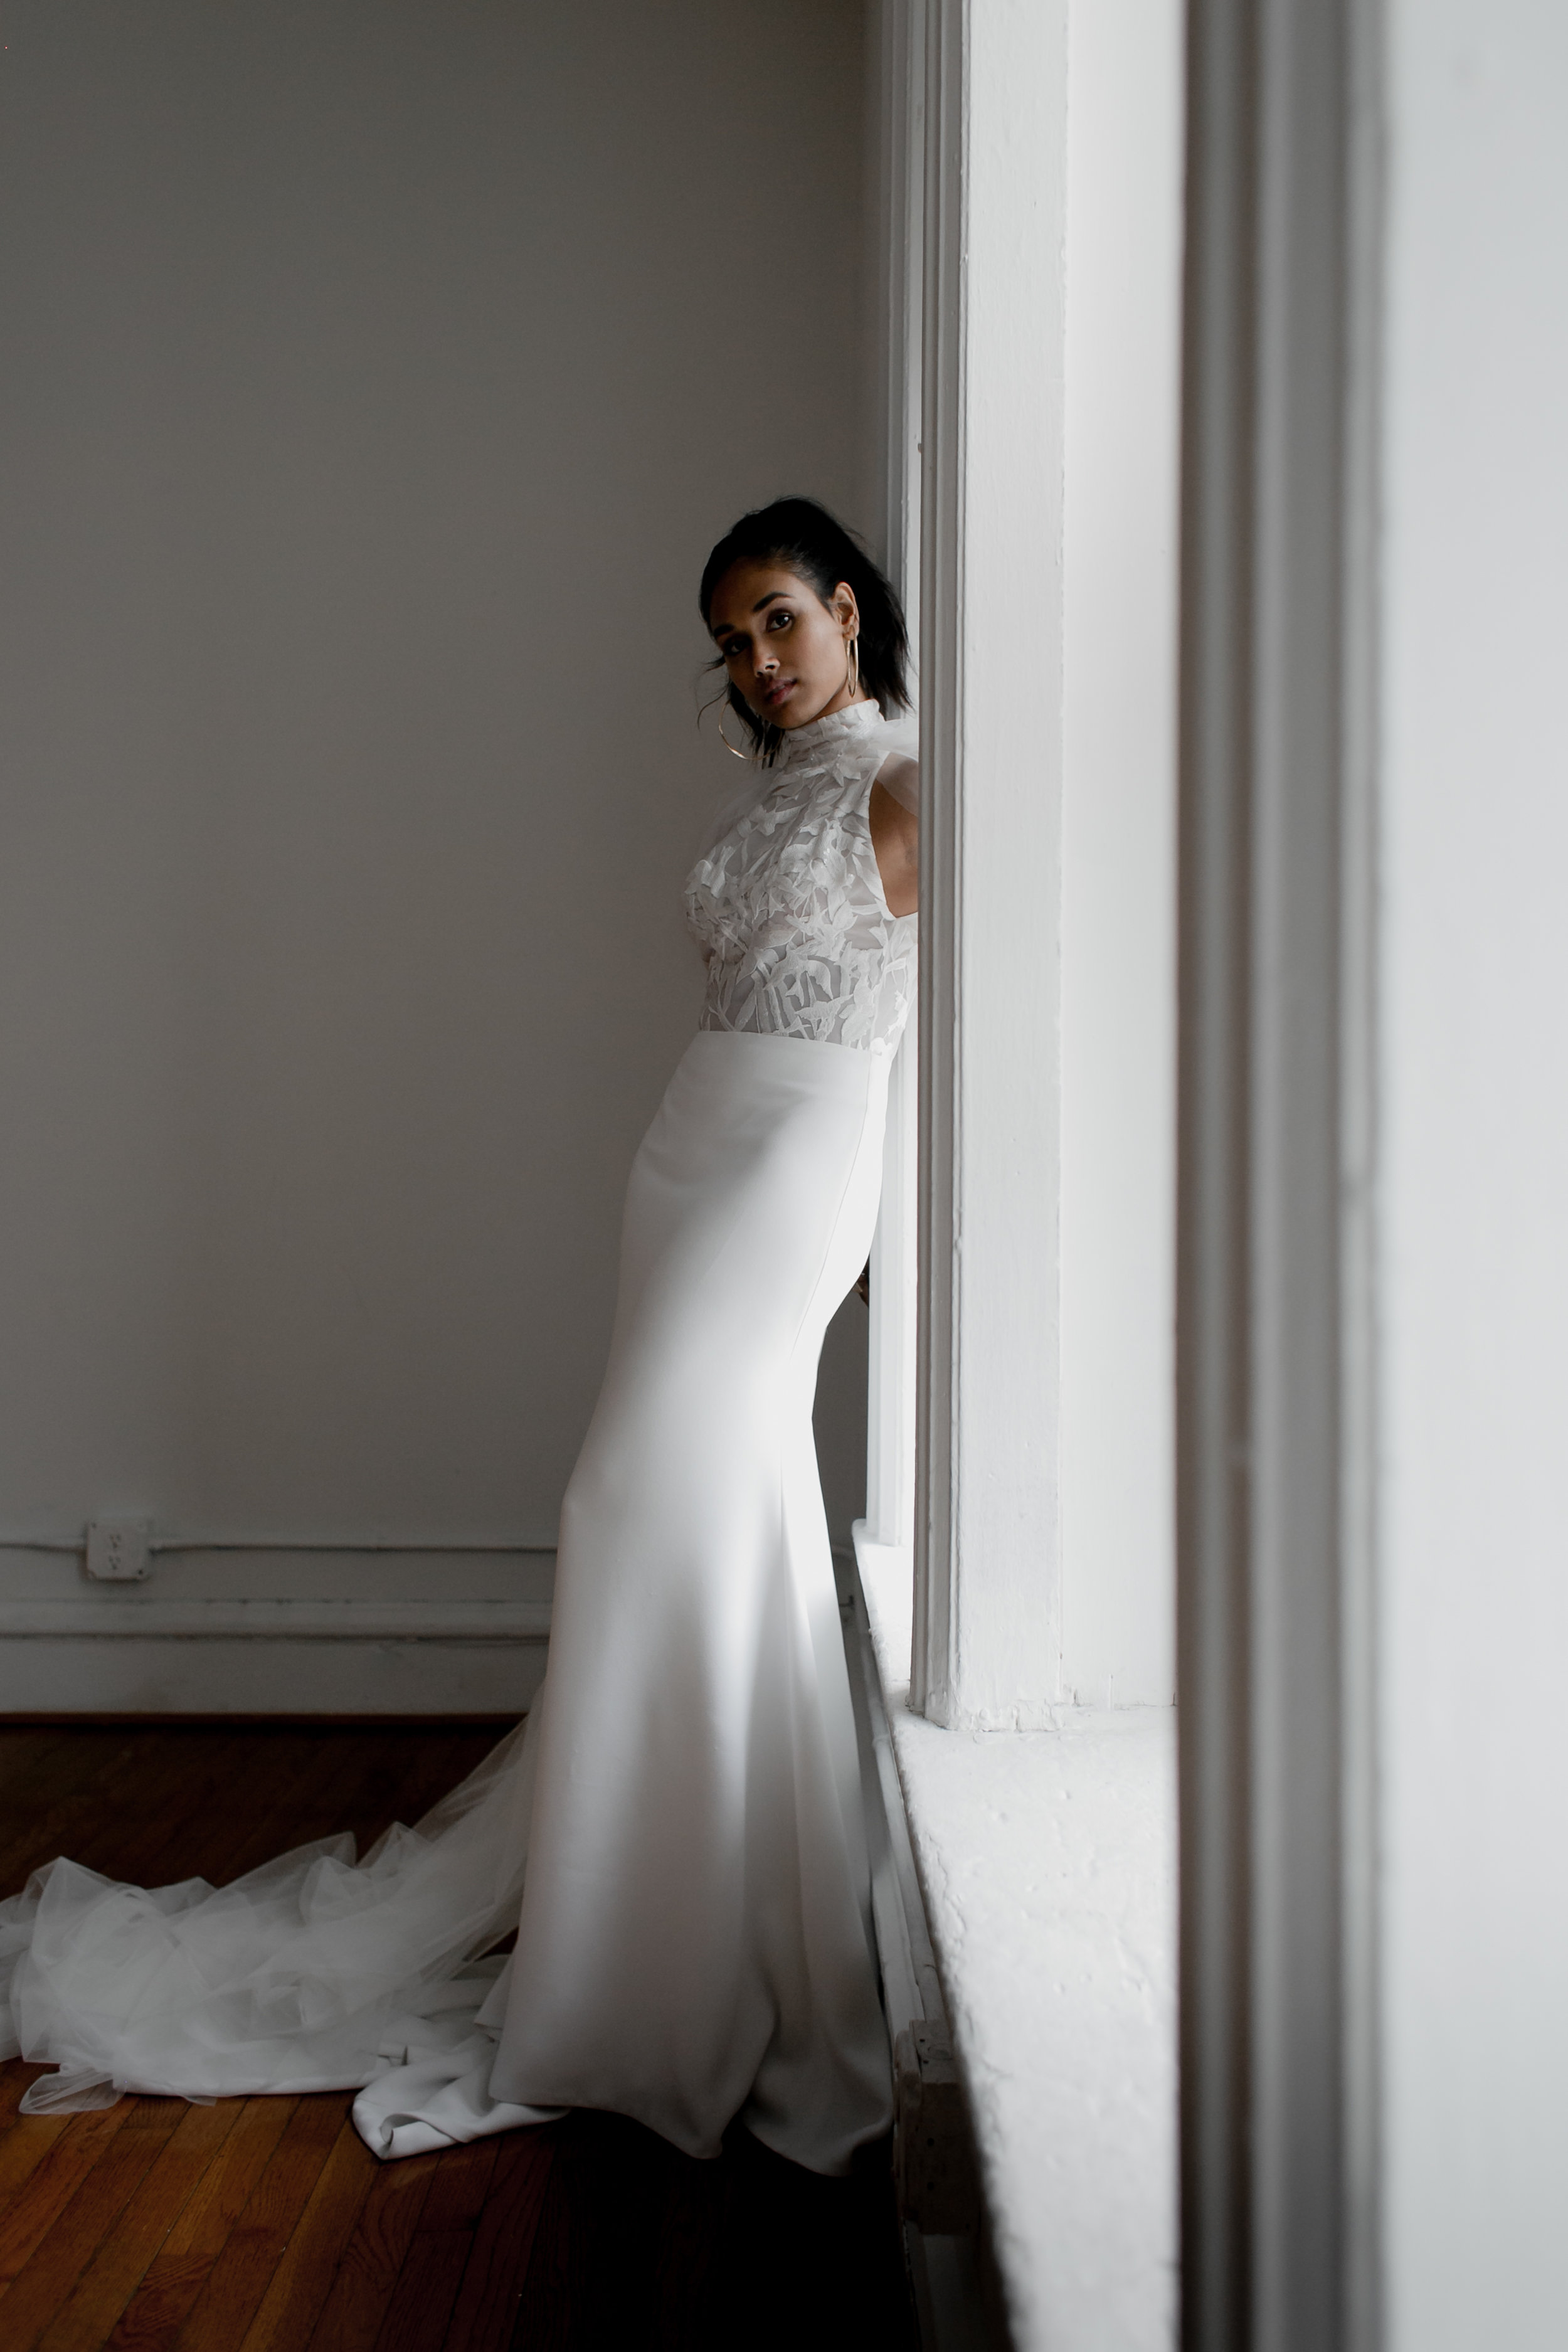 Chicago-Bride-Wedding-Dress-Varca-Edited-293.jpg